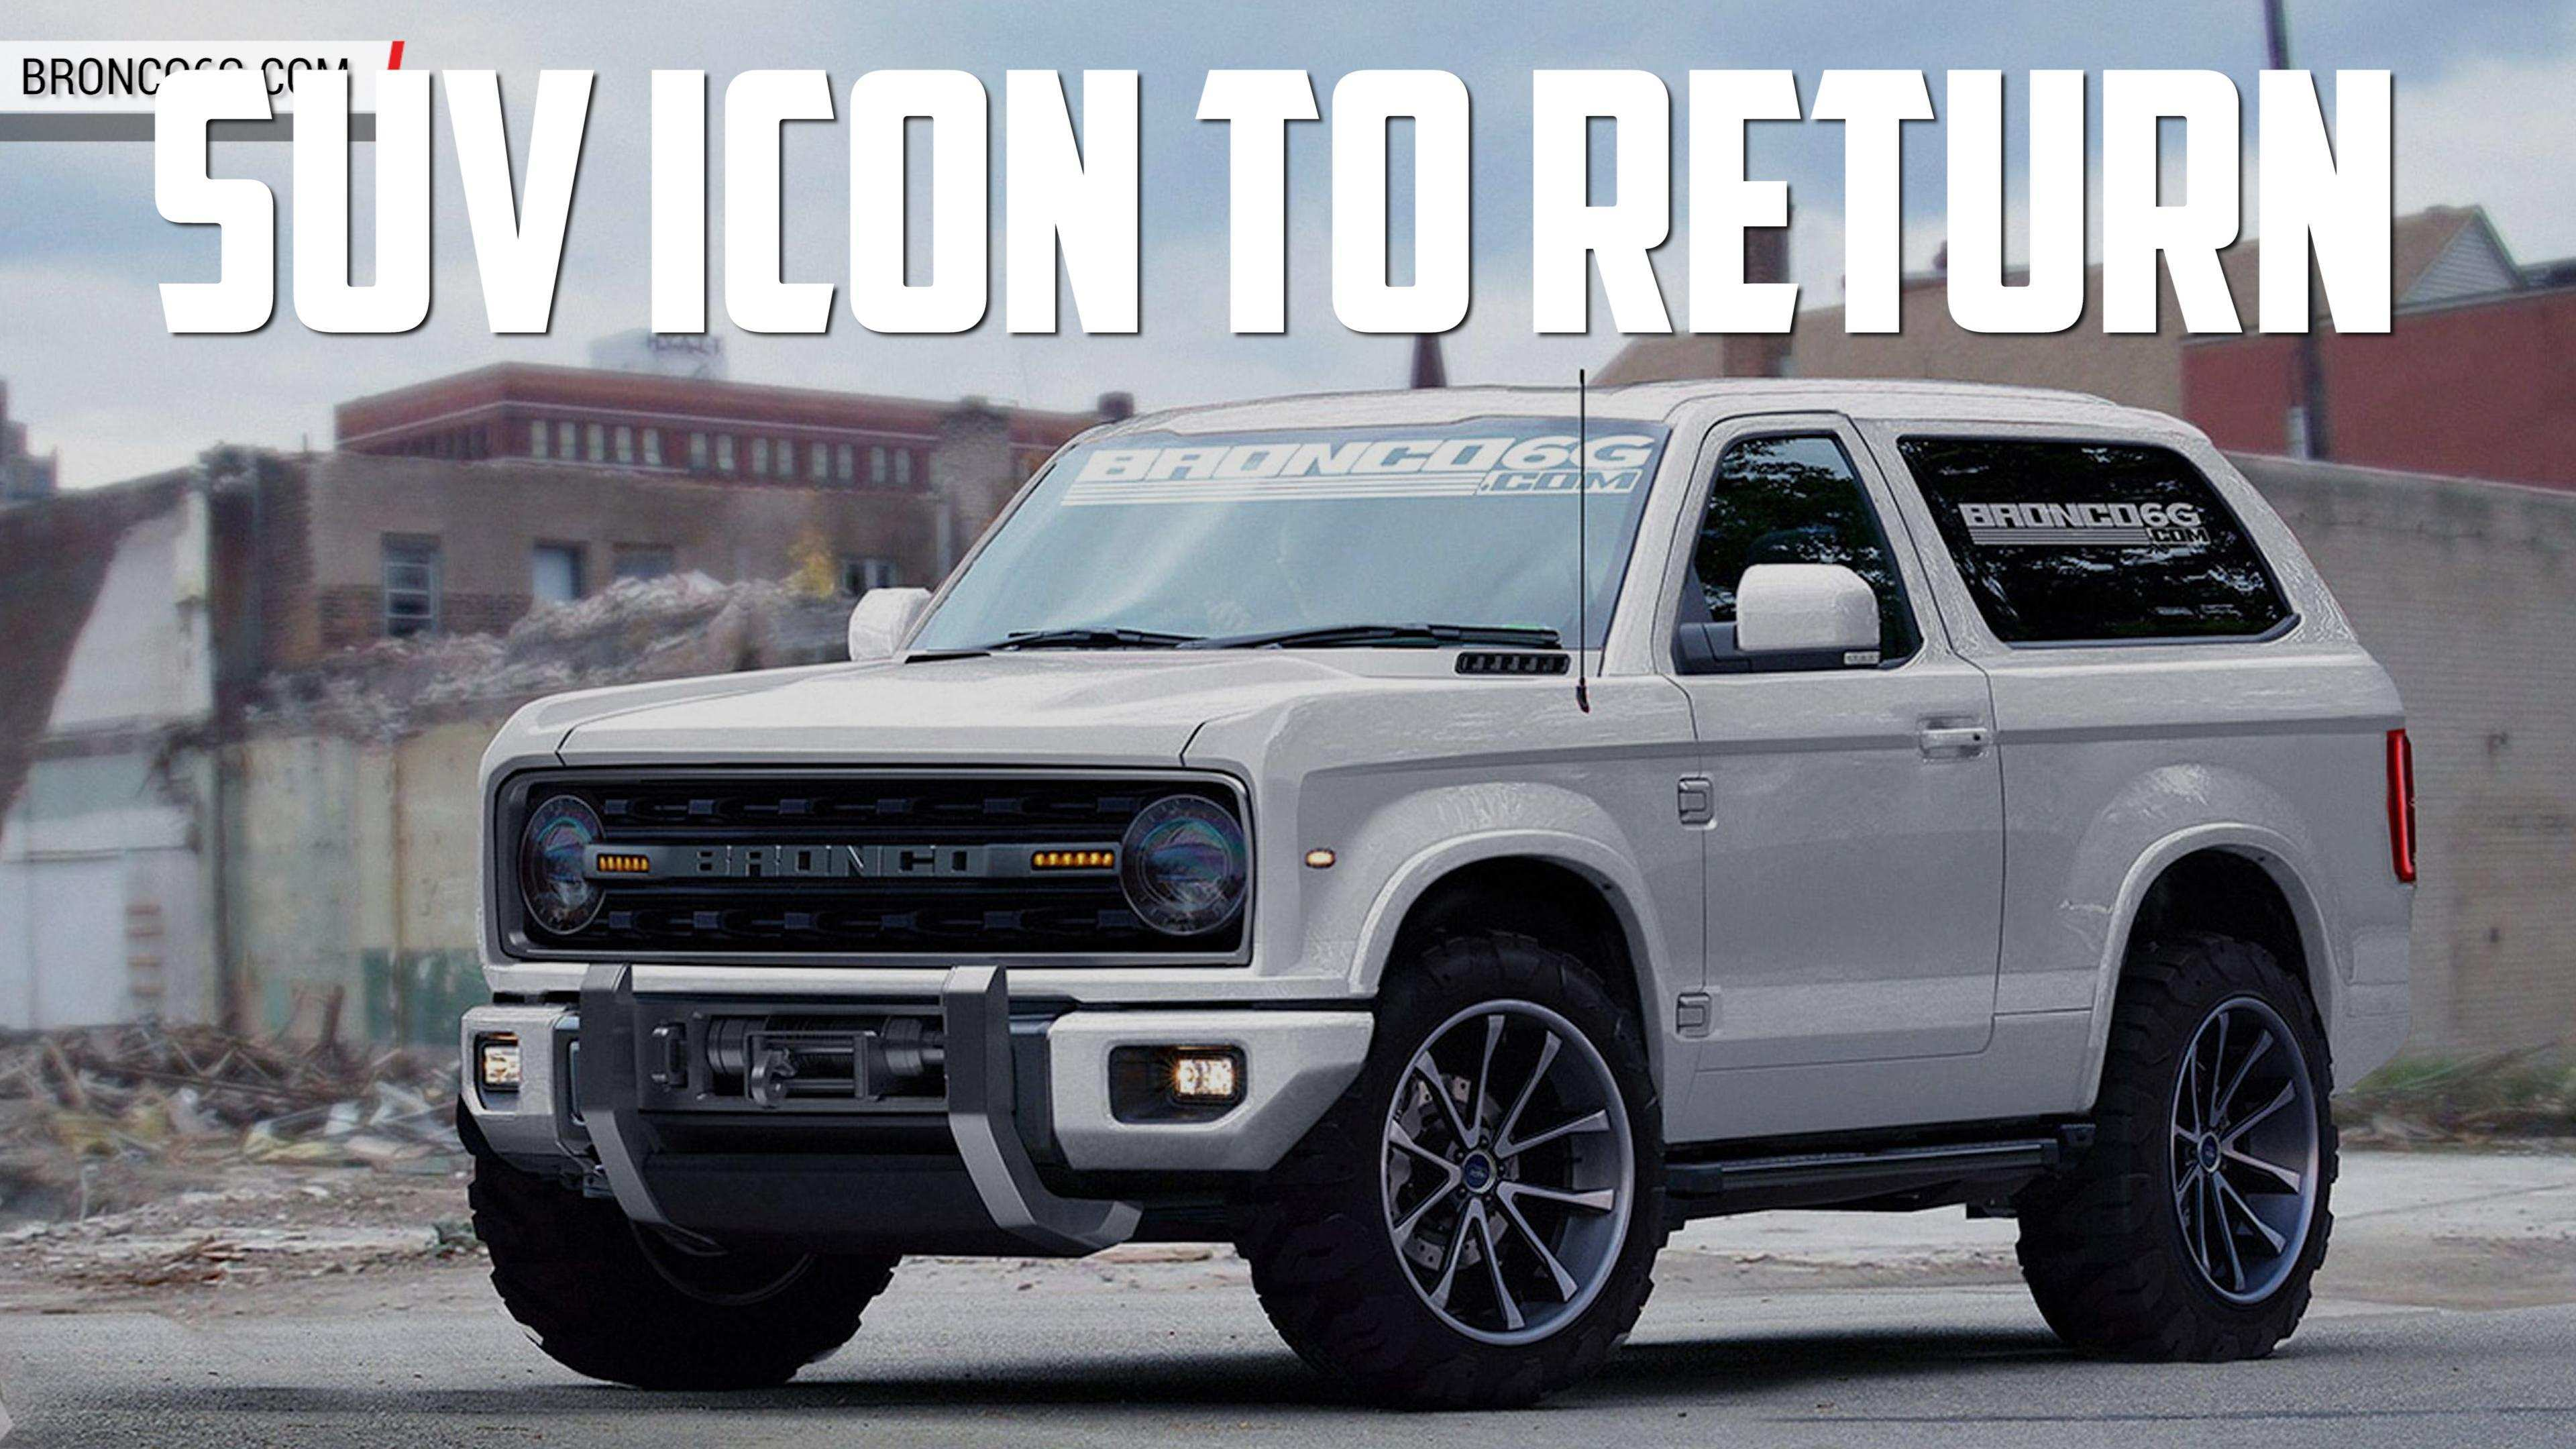 69 New 2020 Ford Bronco Latest News Performance for 2020 Ford Bronco Latest News